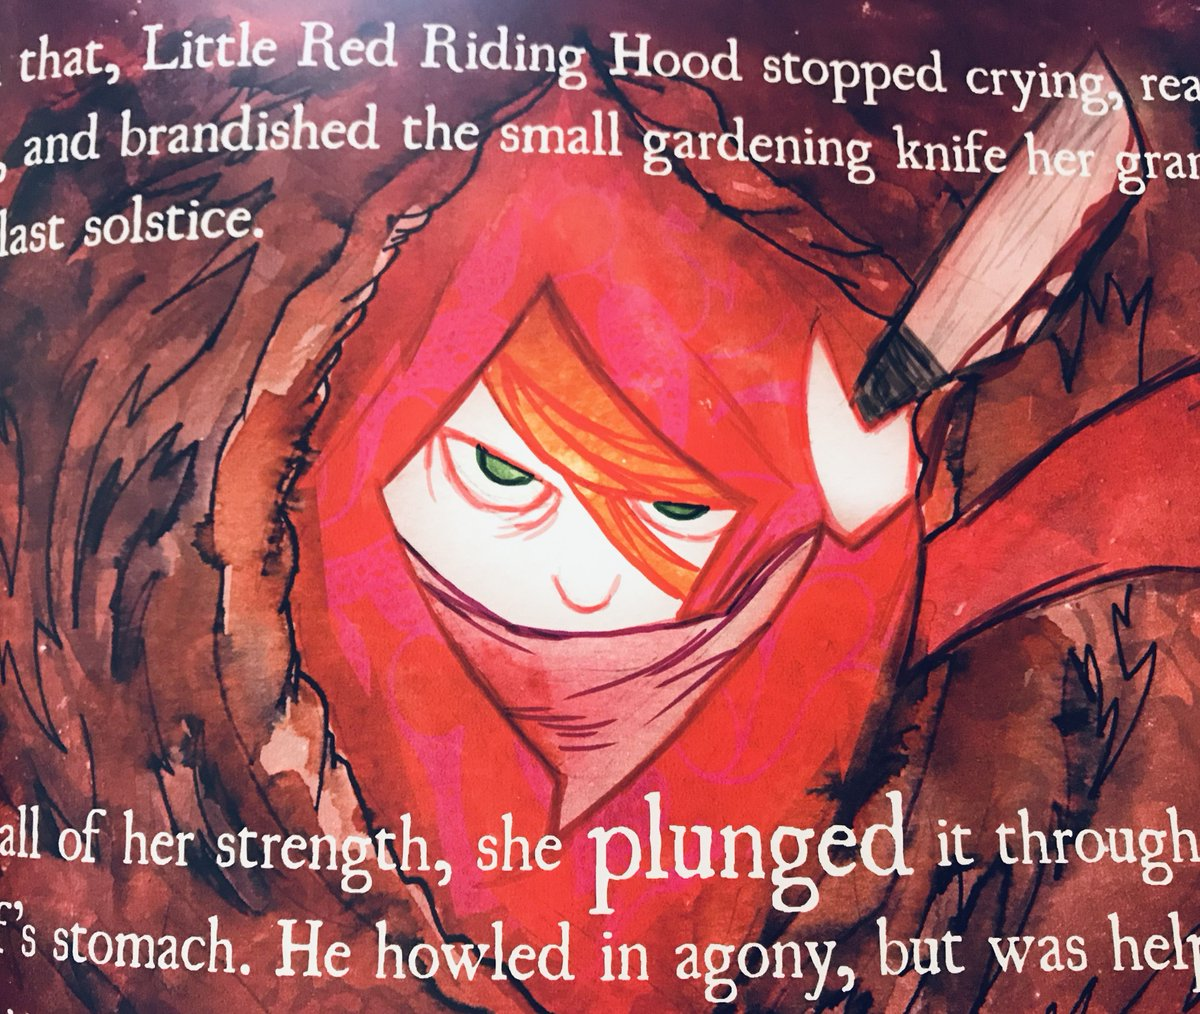 Feminism in the form of a graphic novel fairytale. Get a copy here: https://t.co/CNbgy0vJAN #LittleRedRidingHood https://t.co/OgHaJbw3dg